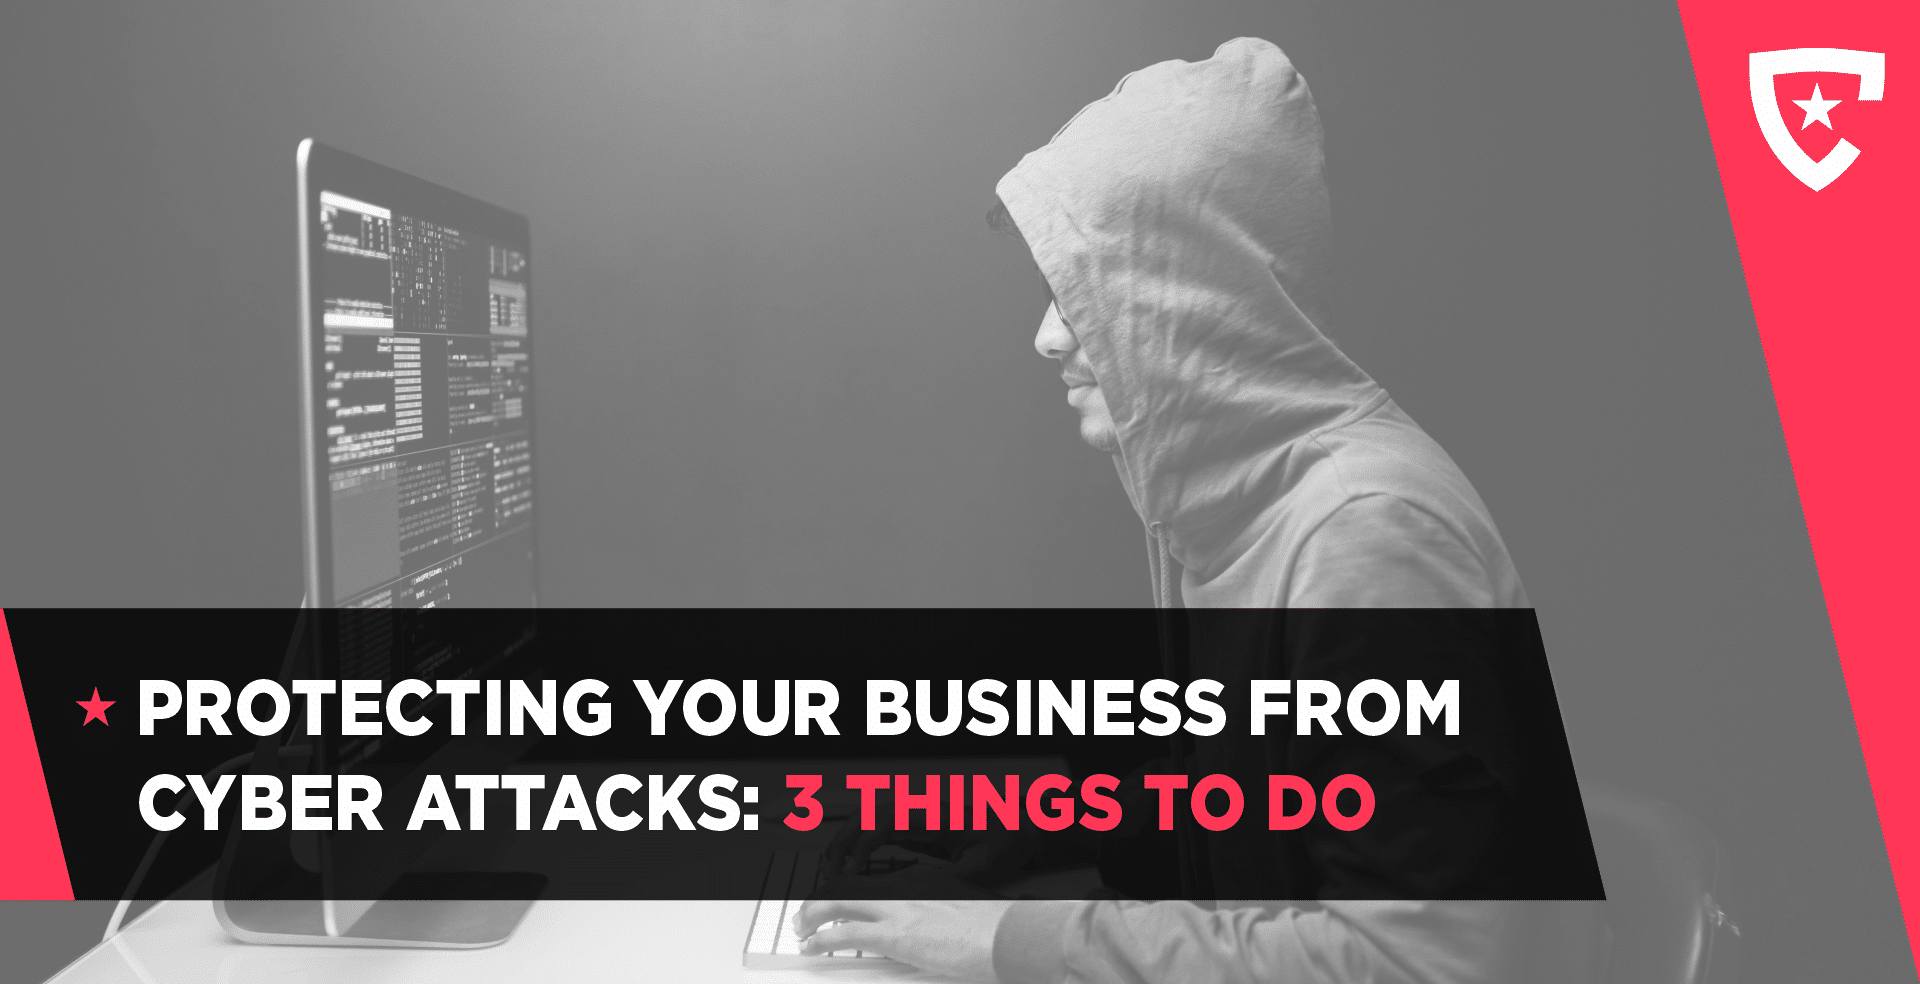 Protecting Your Business From Cyber Attacks. 3 Things to Do